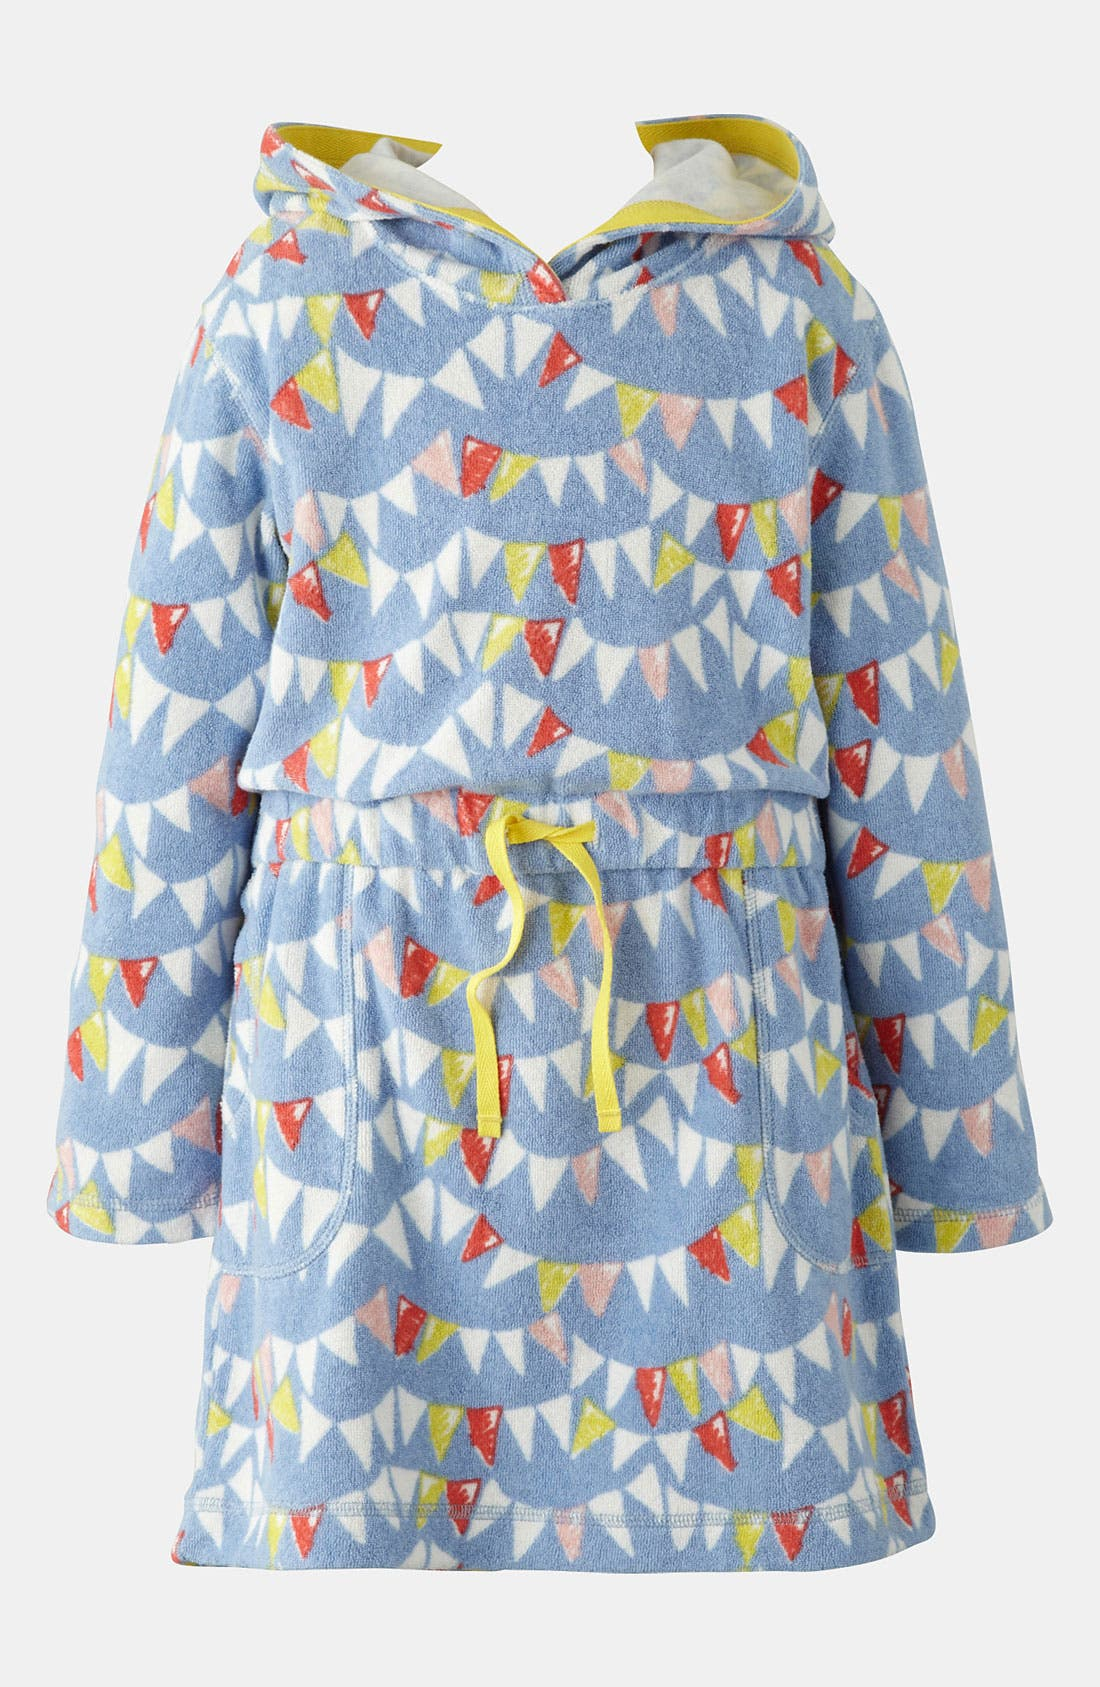 Main Image - Mini Boden Beach Dress (Toddler)